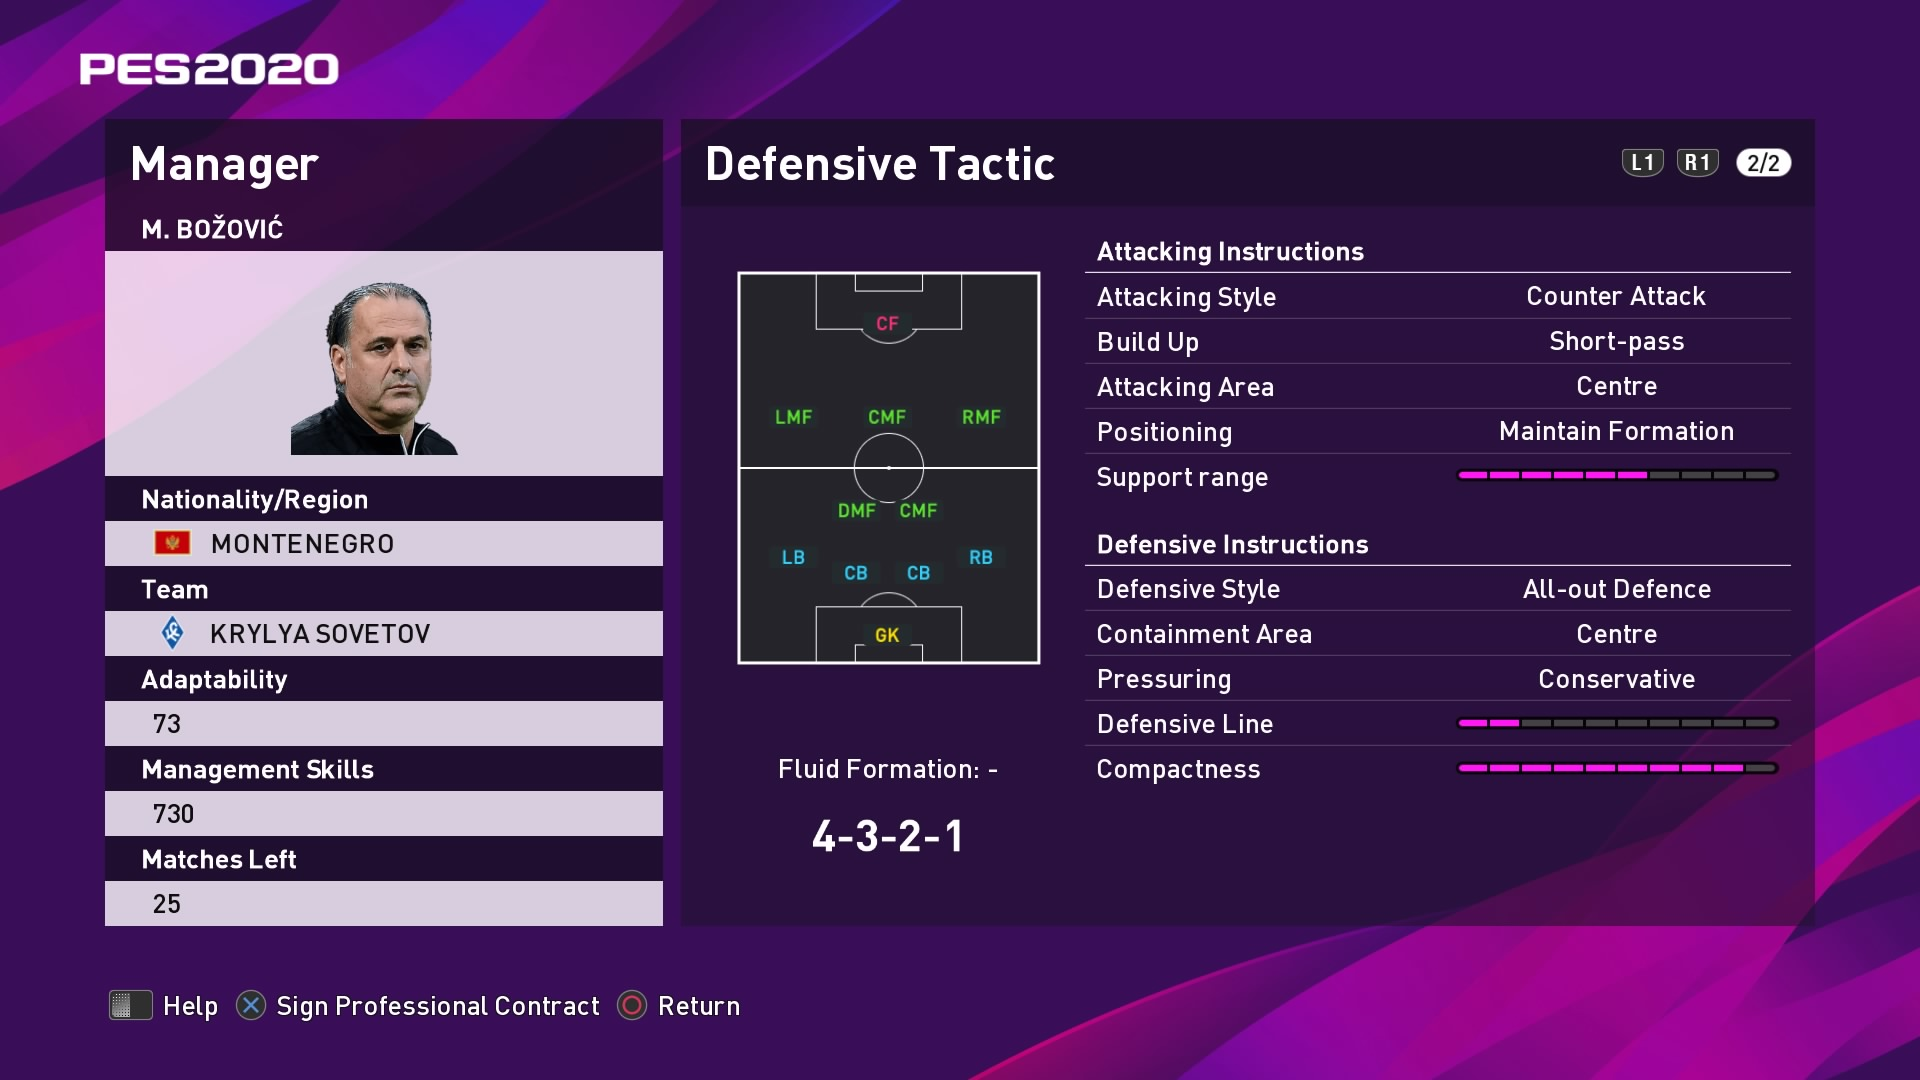 M. Bozovic (Miodrag Božović) Defensive Tactic in PES 2020 myClub